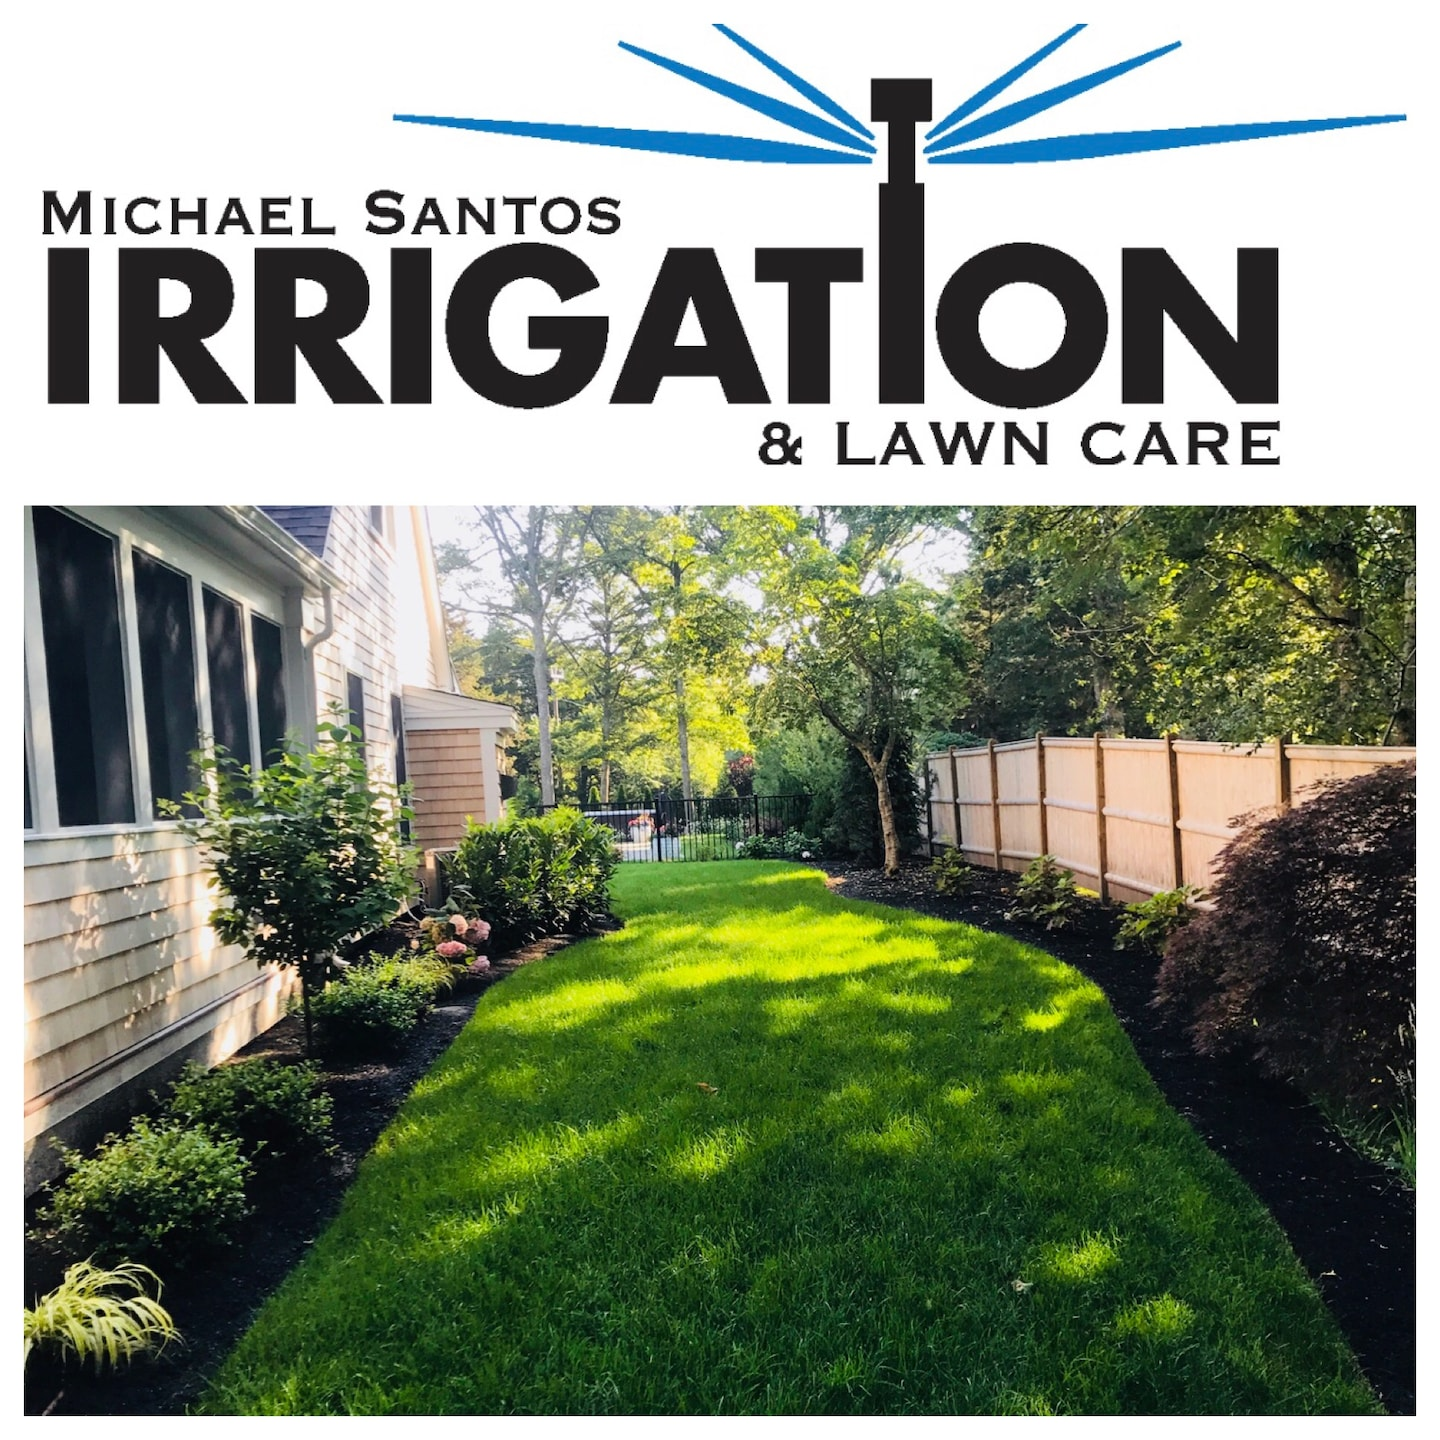 Michael Santos Irrigation & Lawn Care